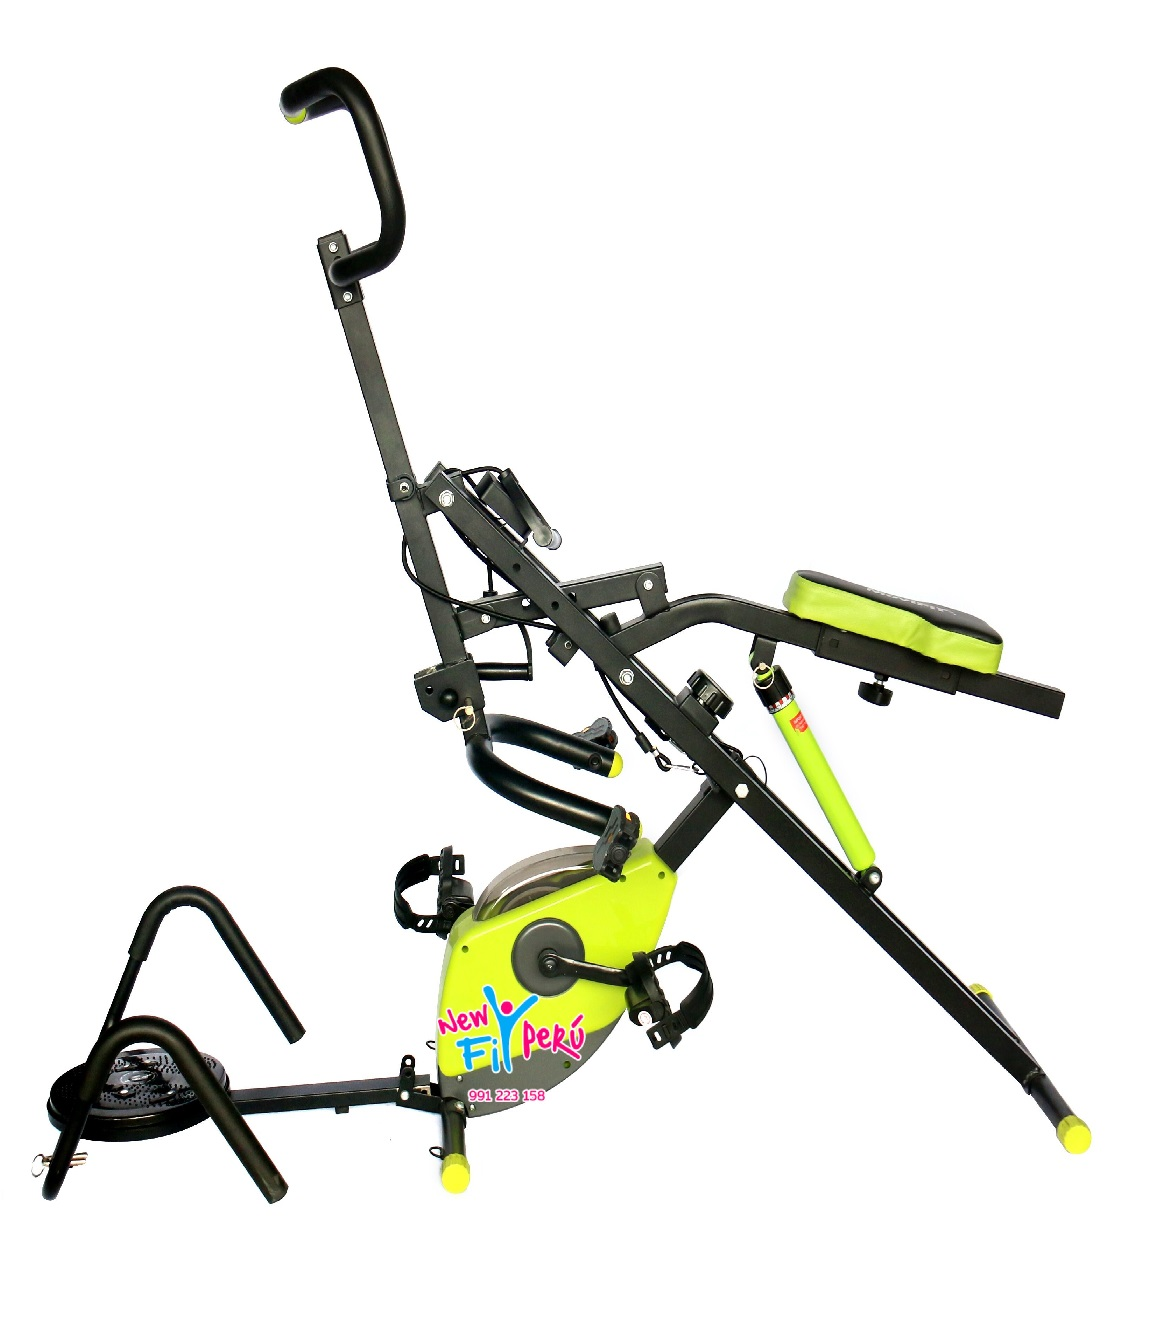 AB CRUNCHER 5 EN 1 / DISCO TWISTER DE CINTURA Y PUSH UP